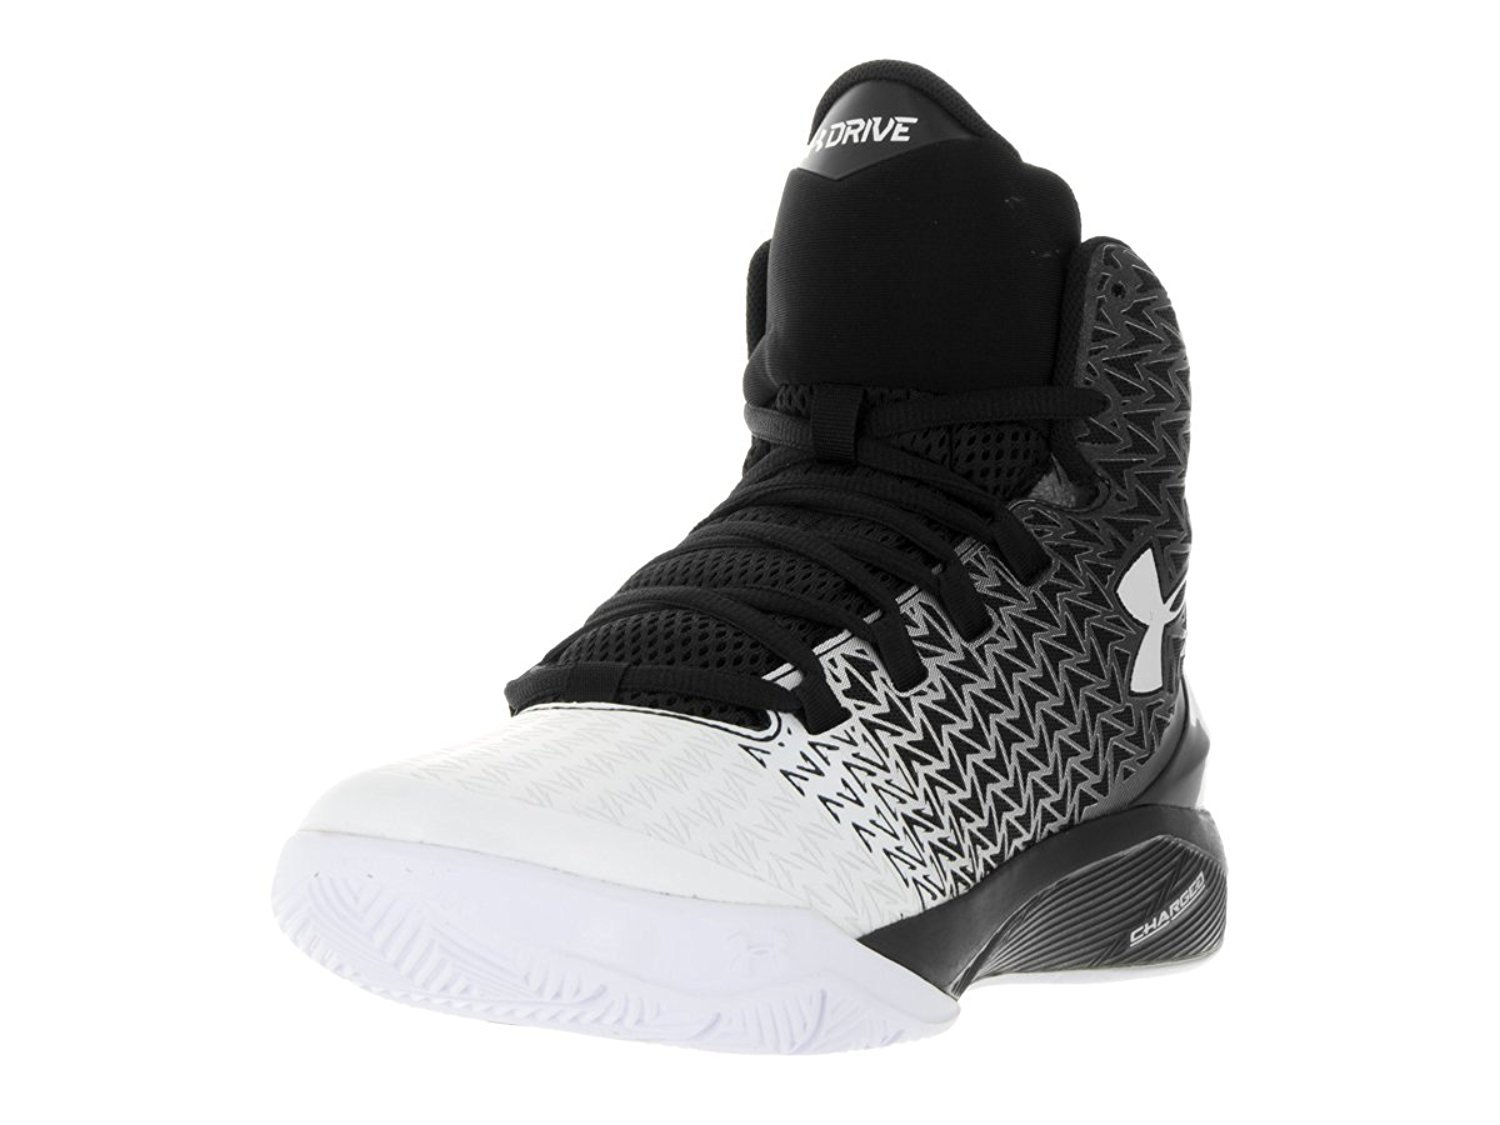 Under Armour UA BGS Clutchfit Drive 3 Black and White Sizes for Men and Youth